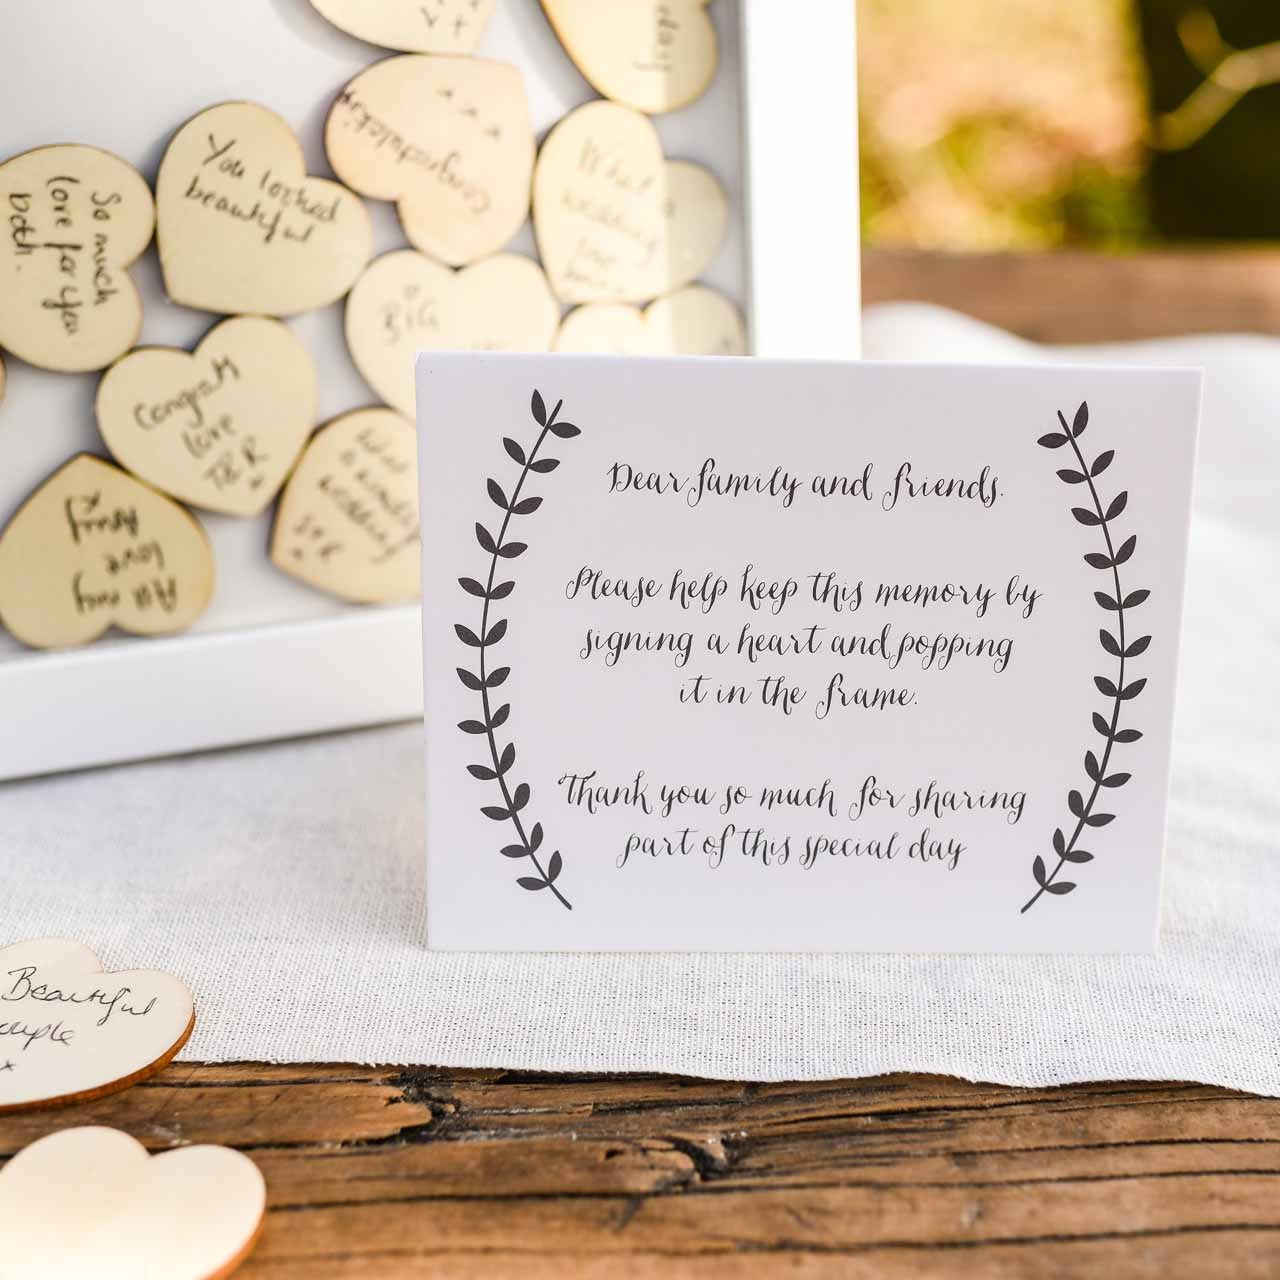 Wooden Heart Drop Top Wedding Guest Book The Wedding Of My Dreams